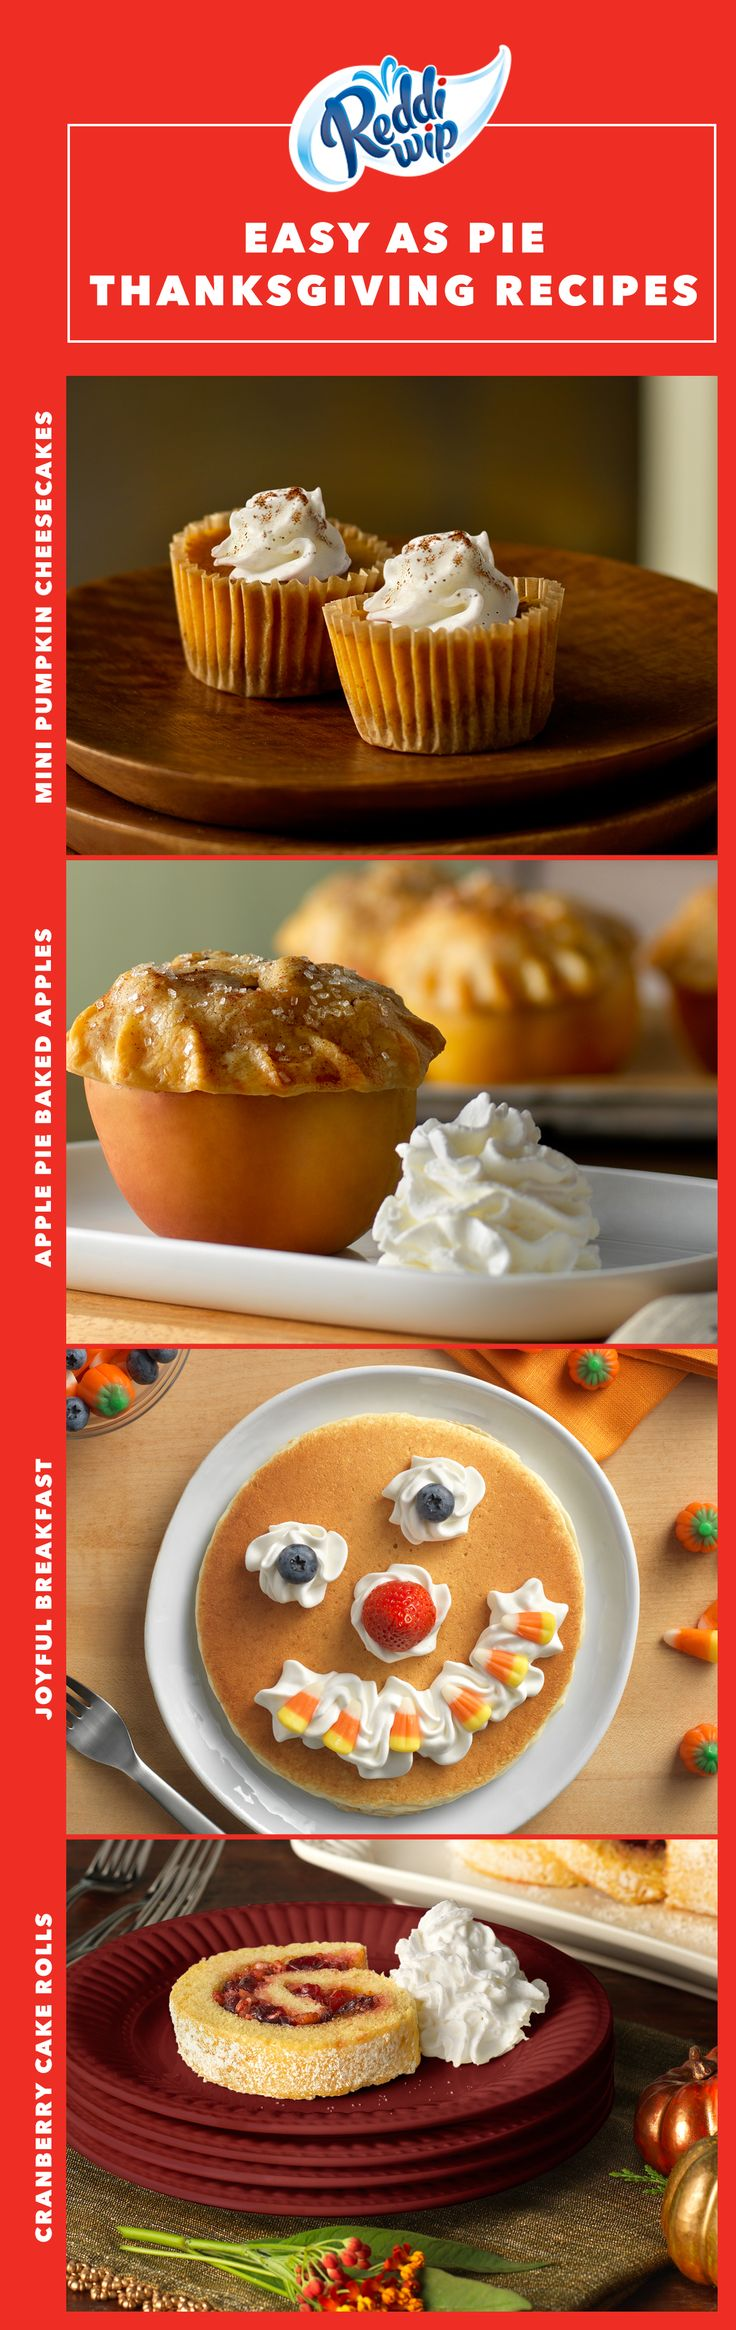 Fall is officially in full-swing and that means a whole lotta' pumpkins and a whole lotta' spice. This Thanksgiving, keep it nice and simple with these deliciously uncomplicated seasonal favorites they'll gobble up in no time!